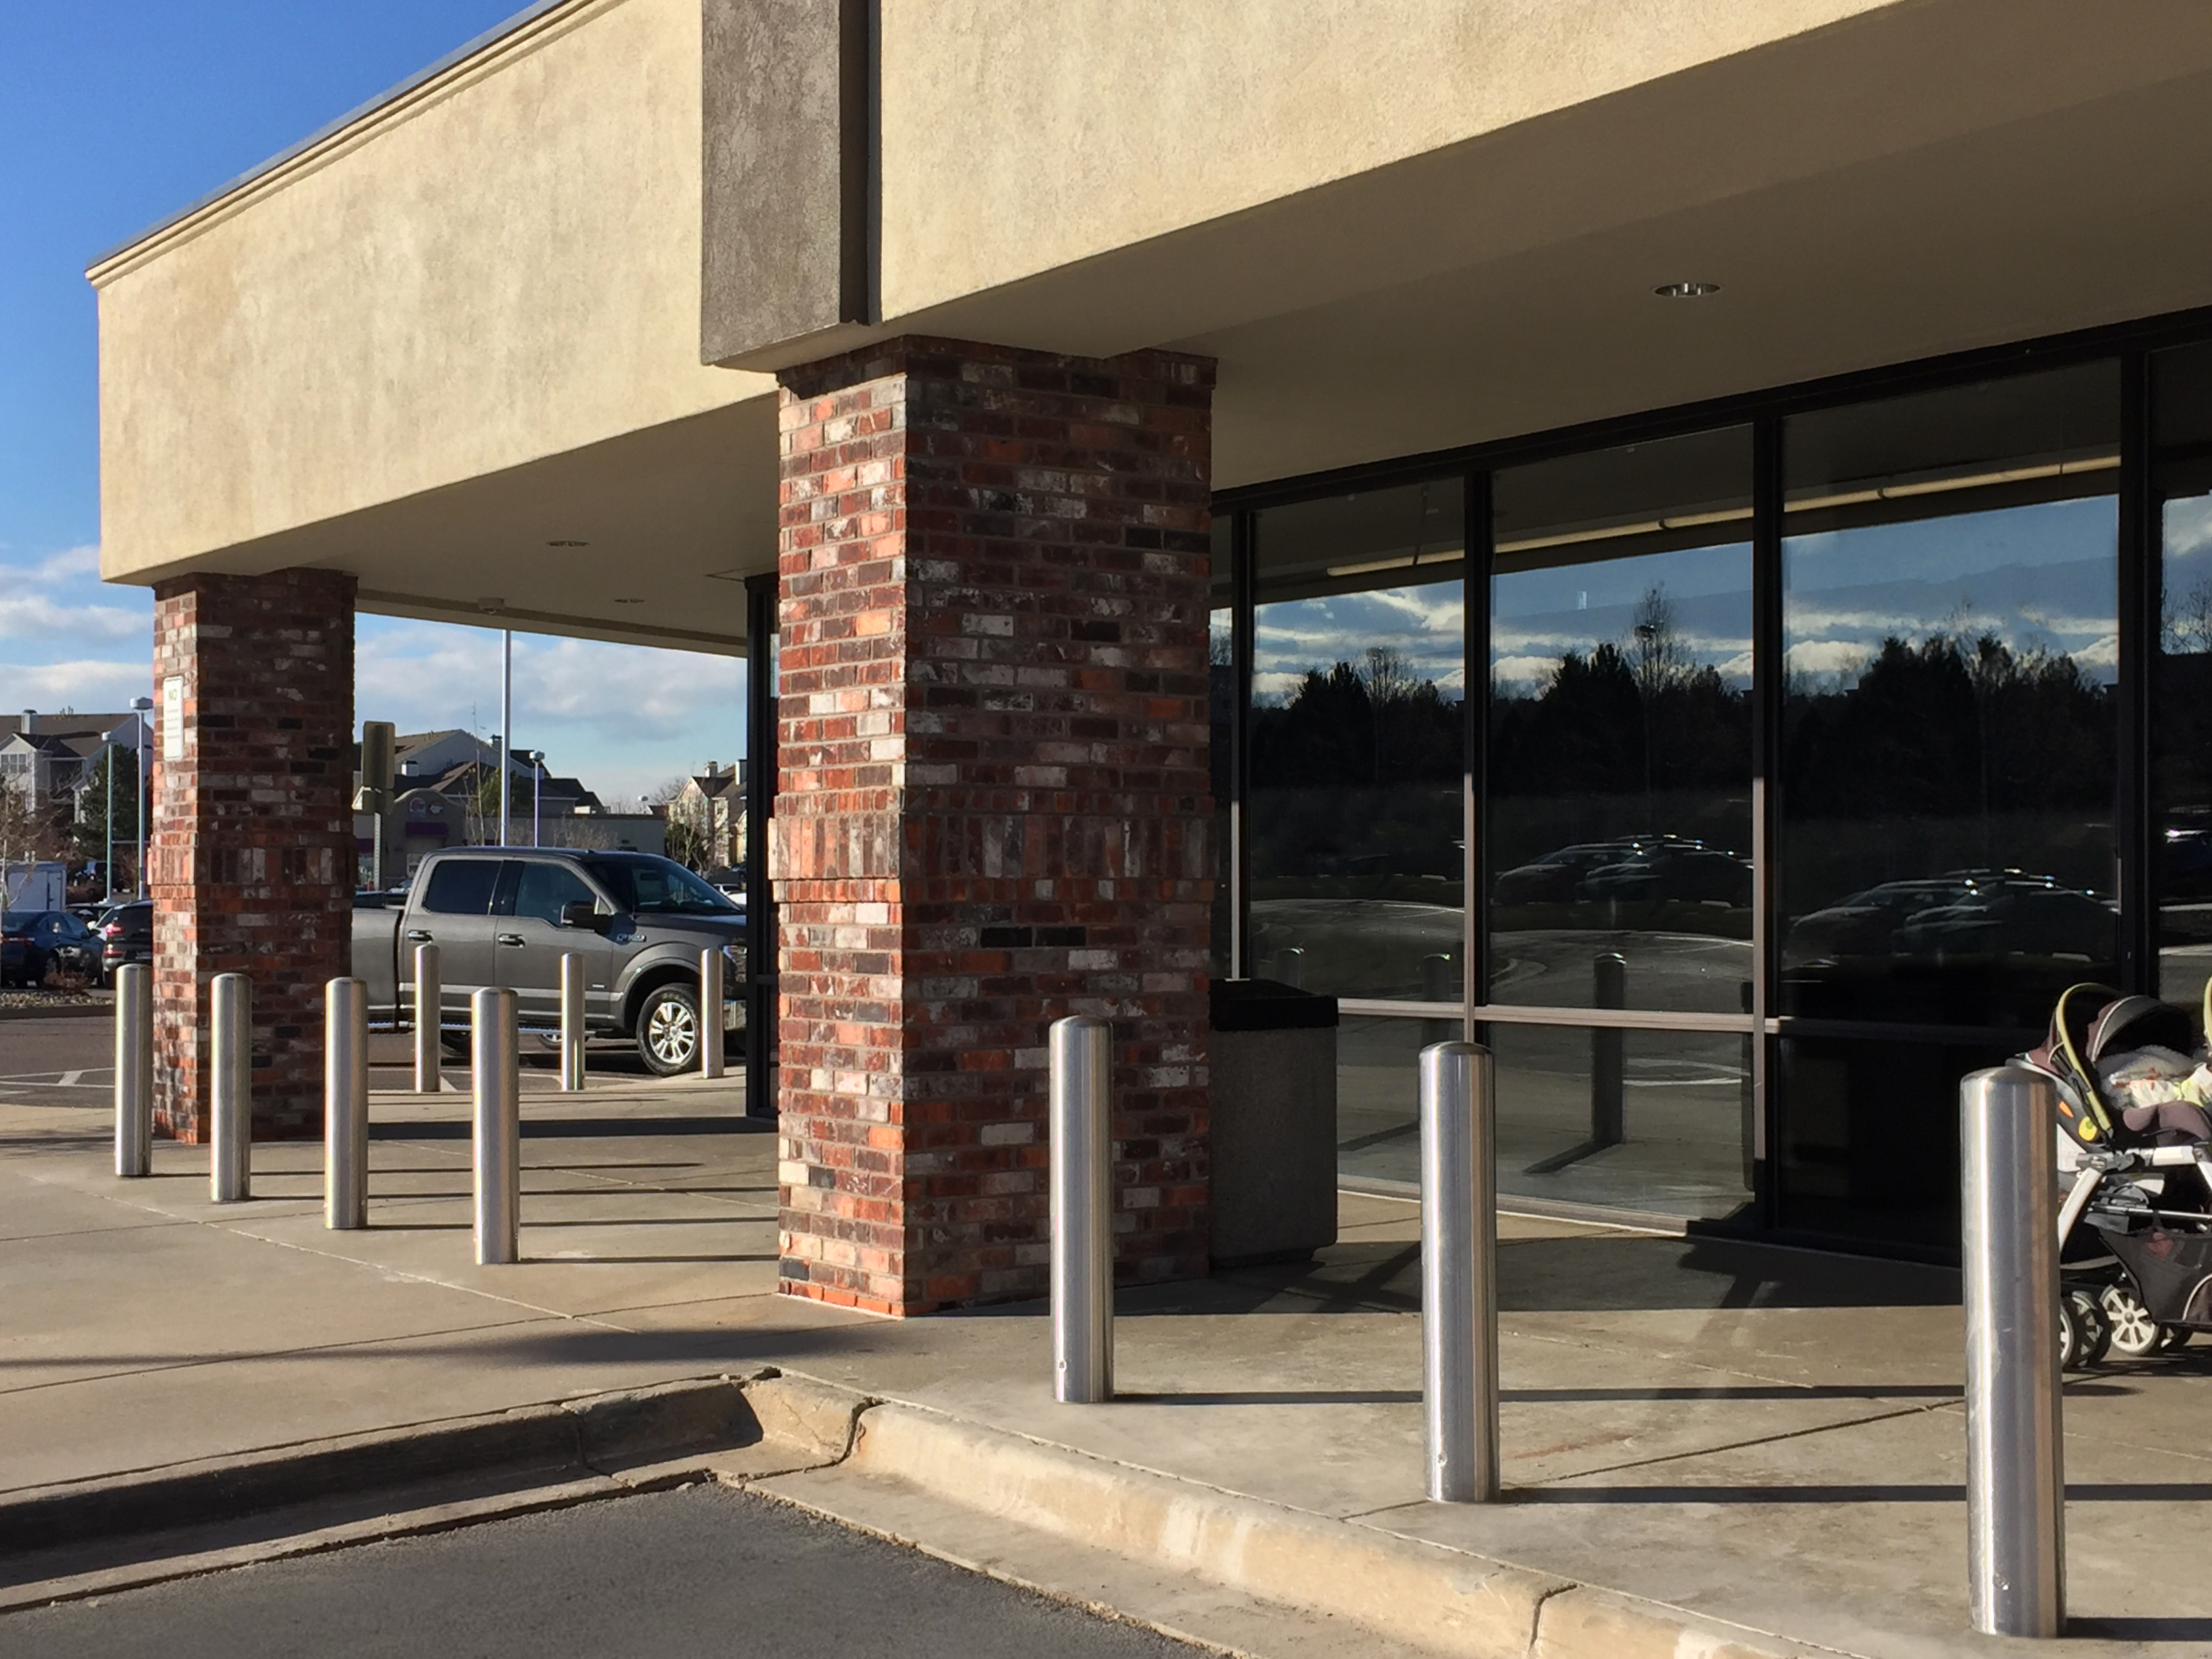 How Can You Prevent Storefront Crashes and Improve Safety? Meet McCue's CrashCore Bollard.